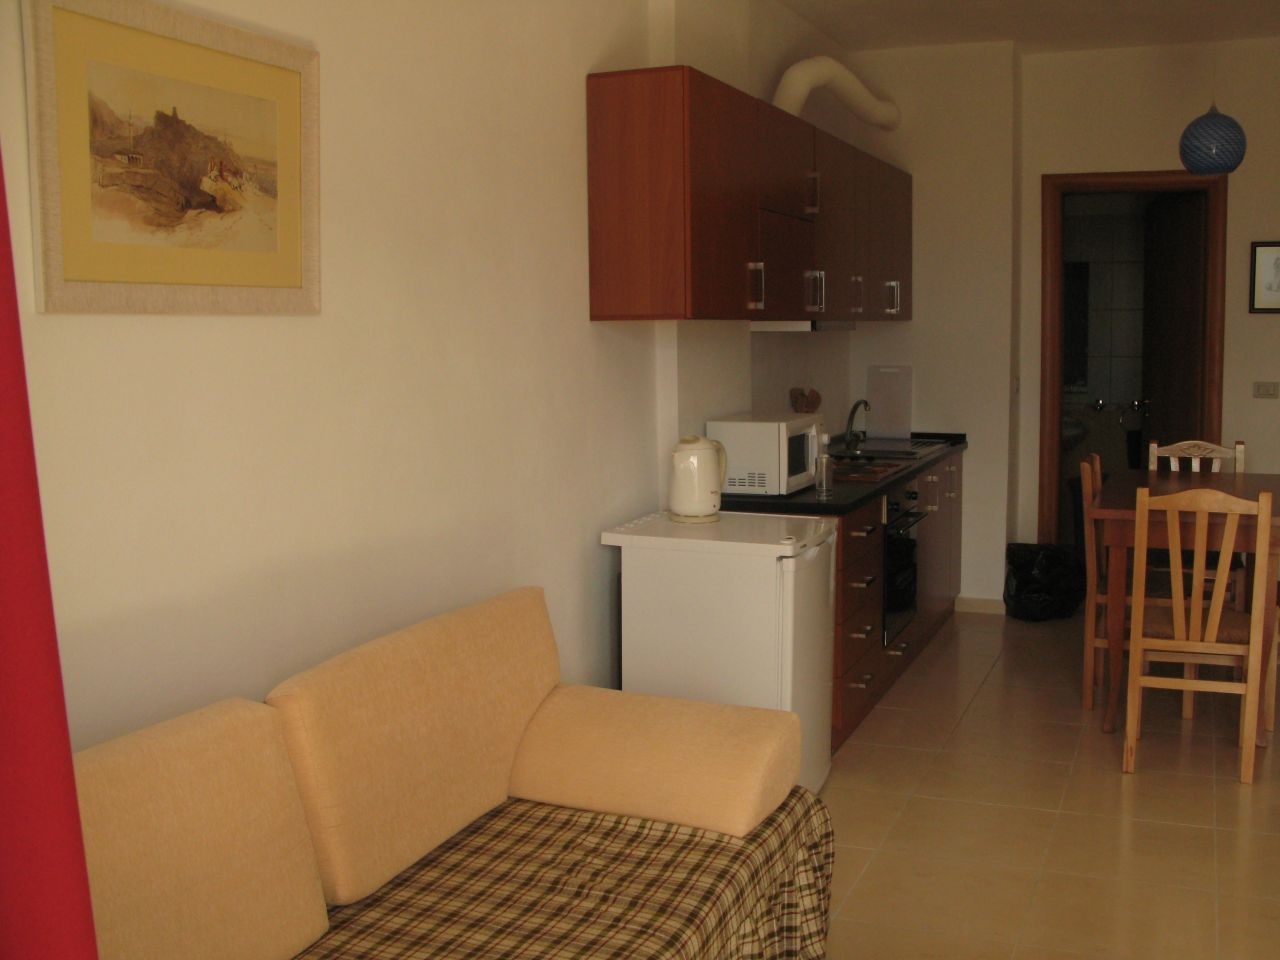 Apartment for Sale in Orikum, coastal village near the city of Vlora, in Albania.